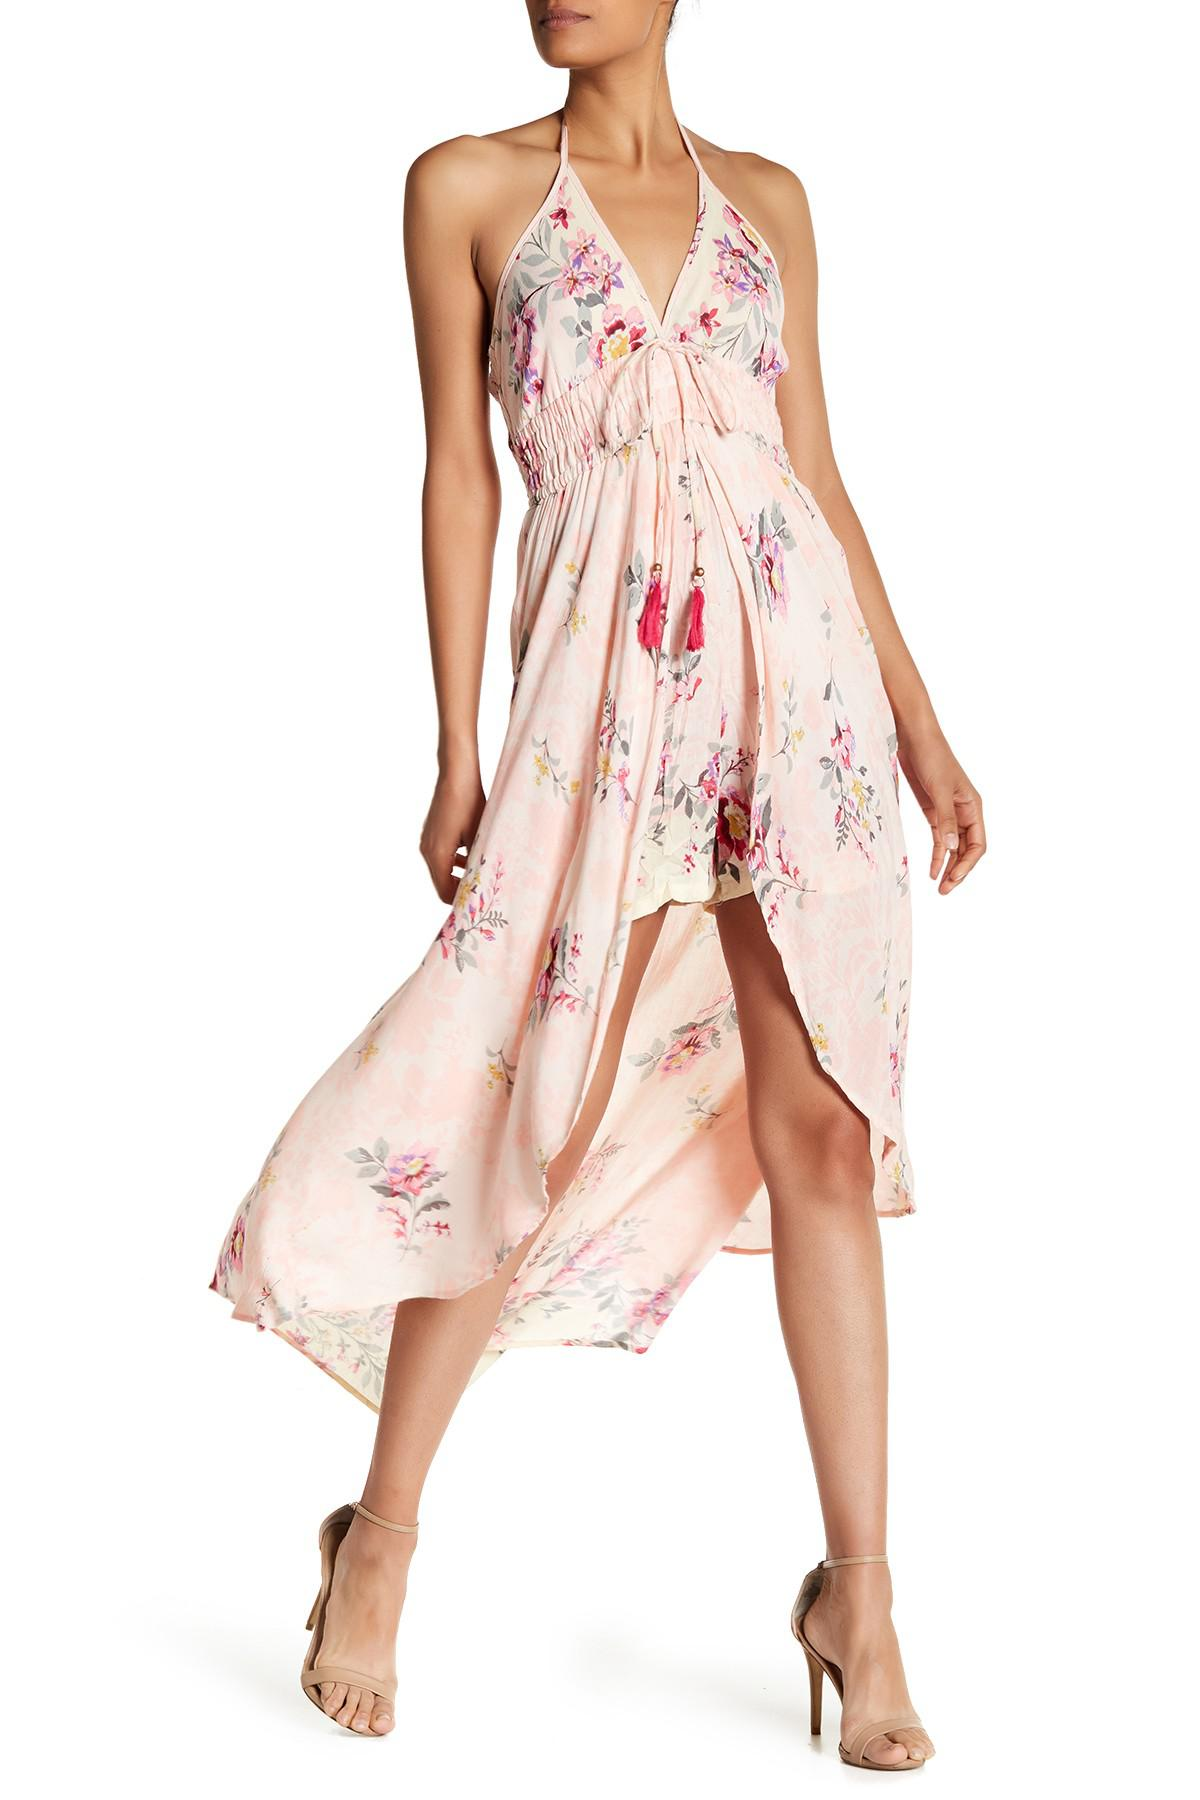 b7c7b8fc56a7 Lyst - Angie Halterneck Floral Printed Romper Cape in Pink